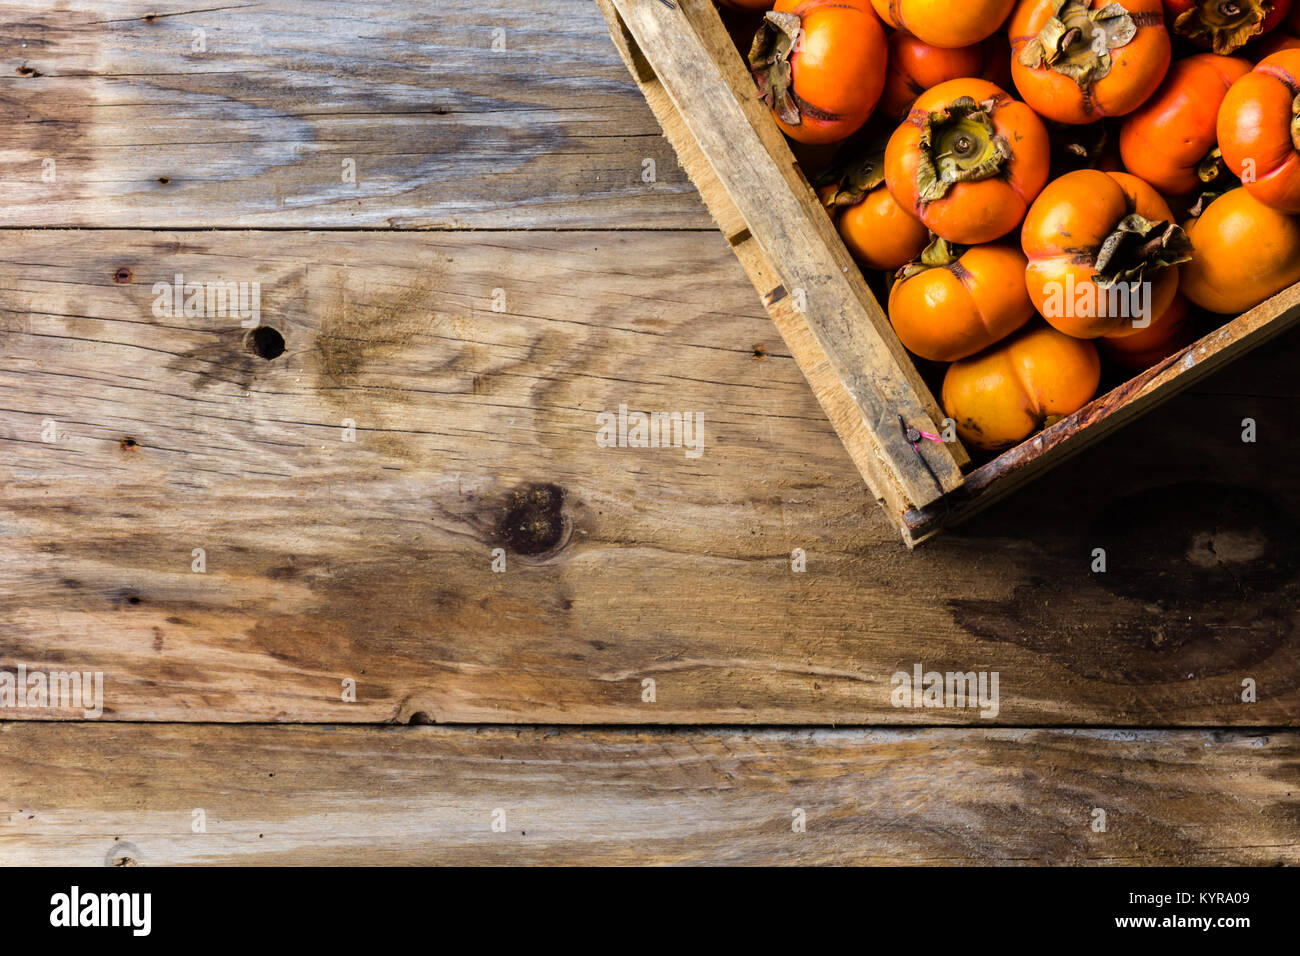 Box of fresh fruits persimmon kaki on old wooden background. Copy space - Stock Image